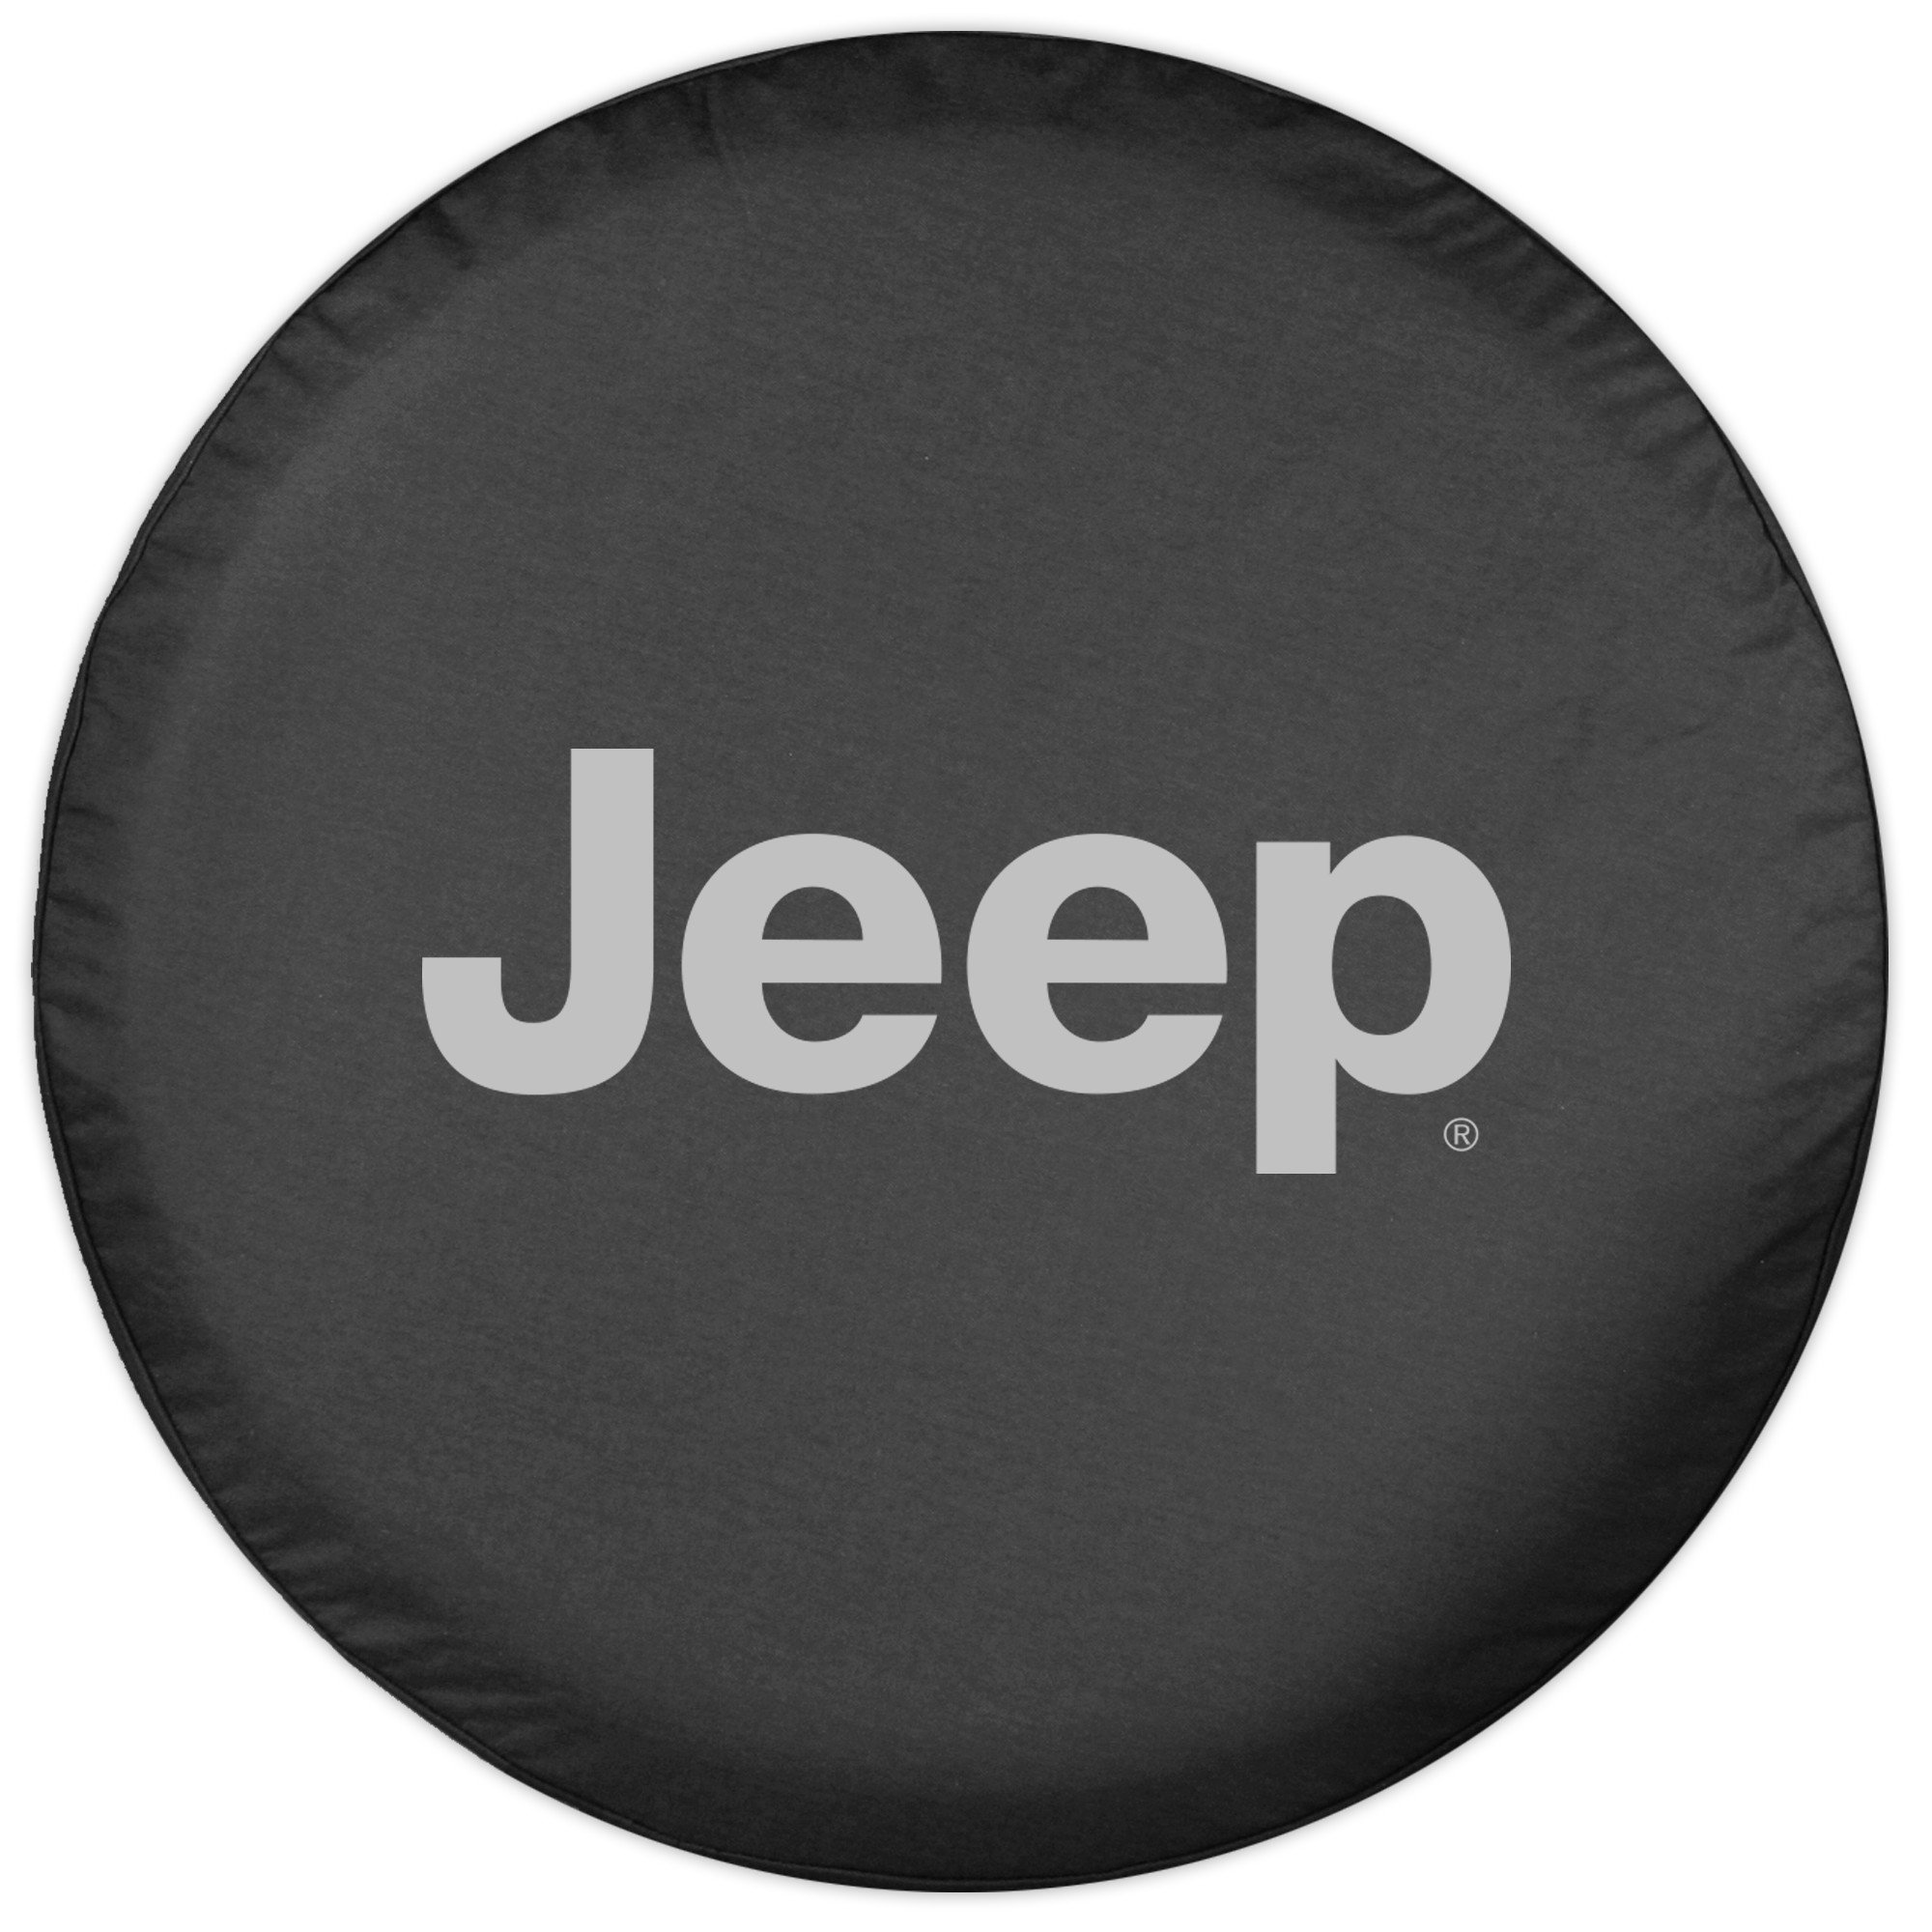 32'' Jeep Logo Tire Cover - (Black Denim Vinyl) - Silver Print - Made in the USA by Optimum USA (Image #2)